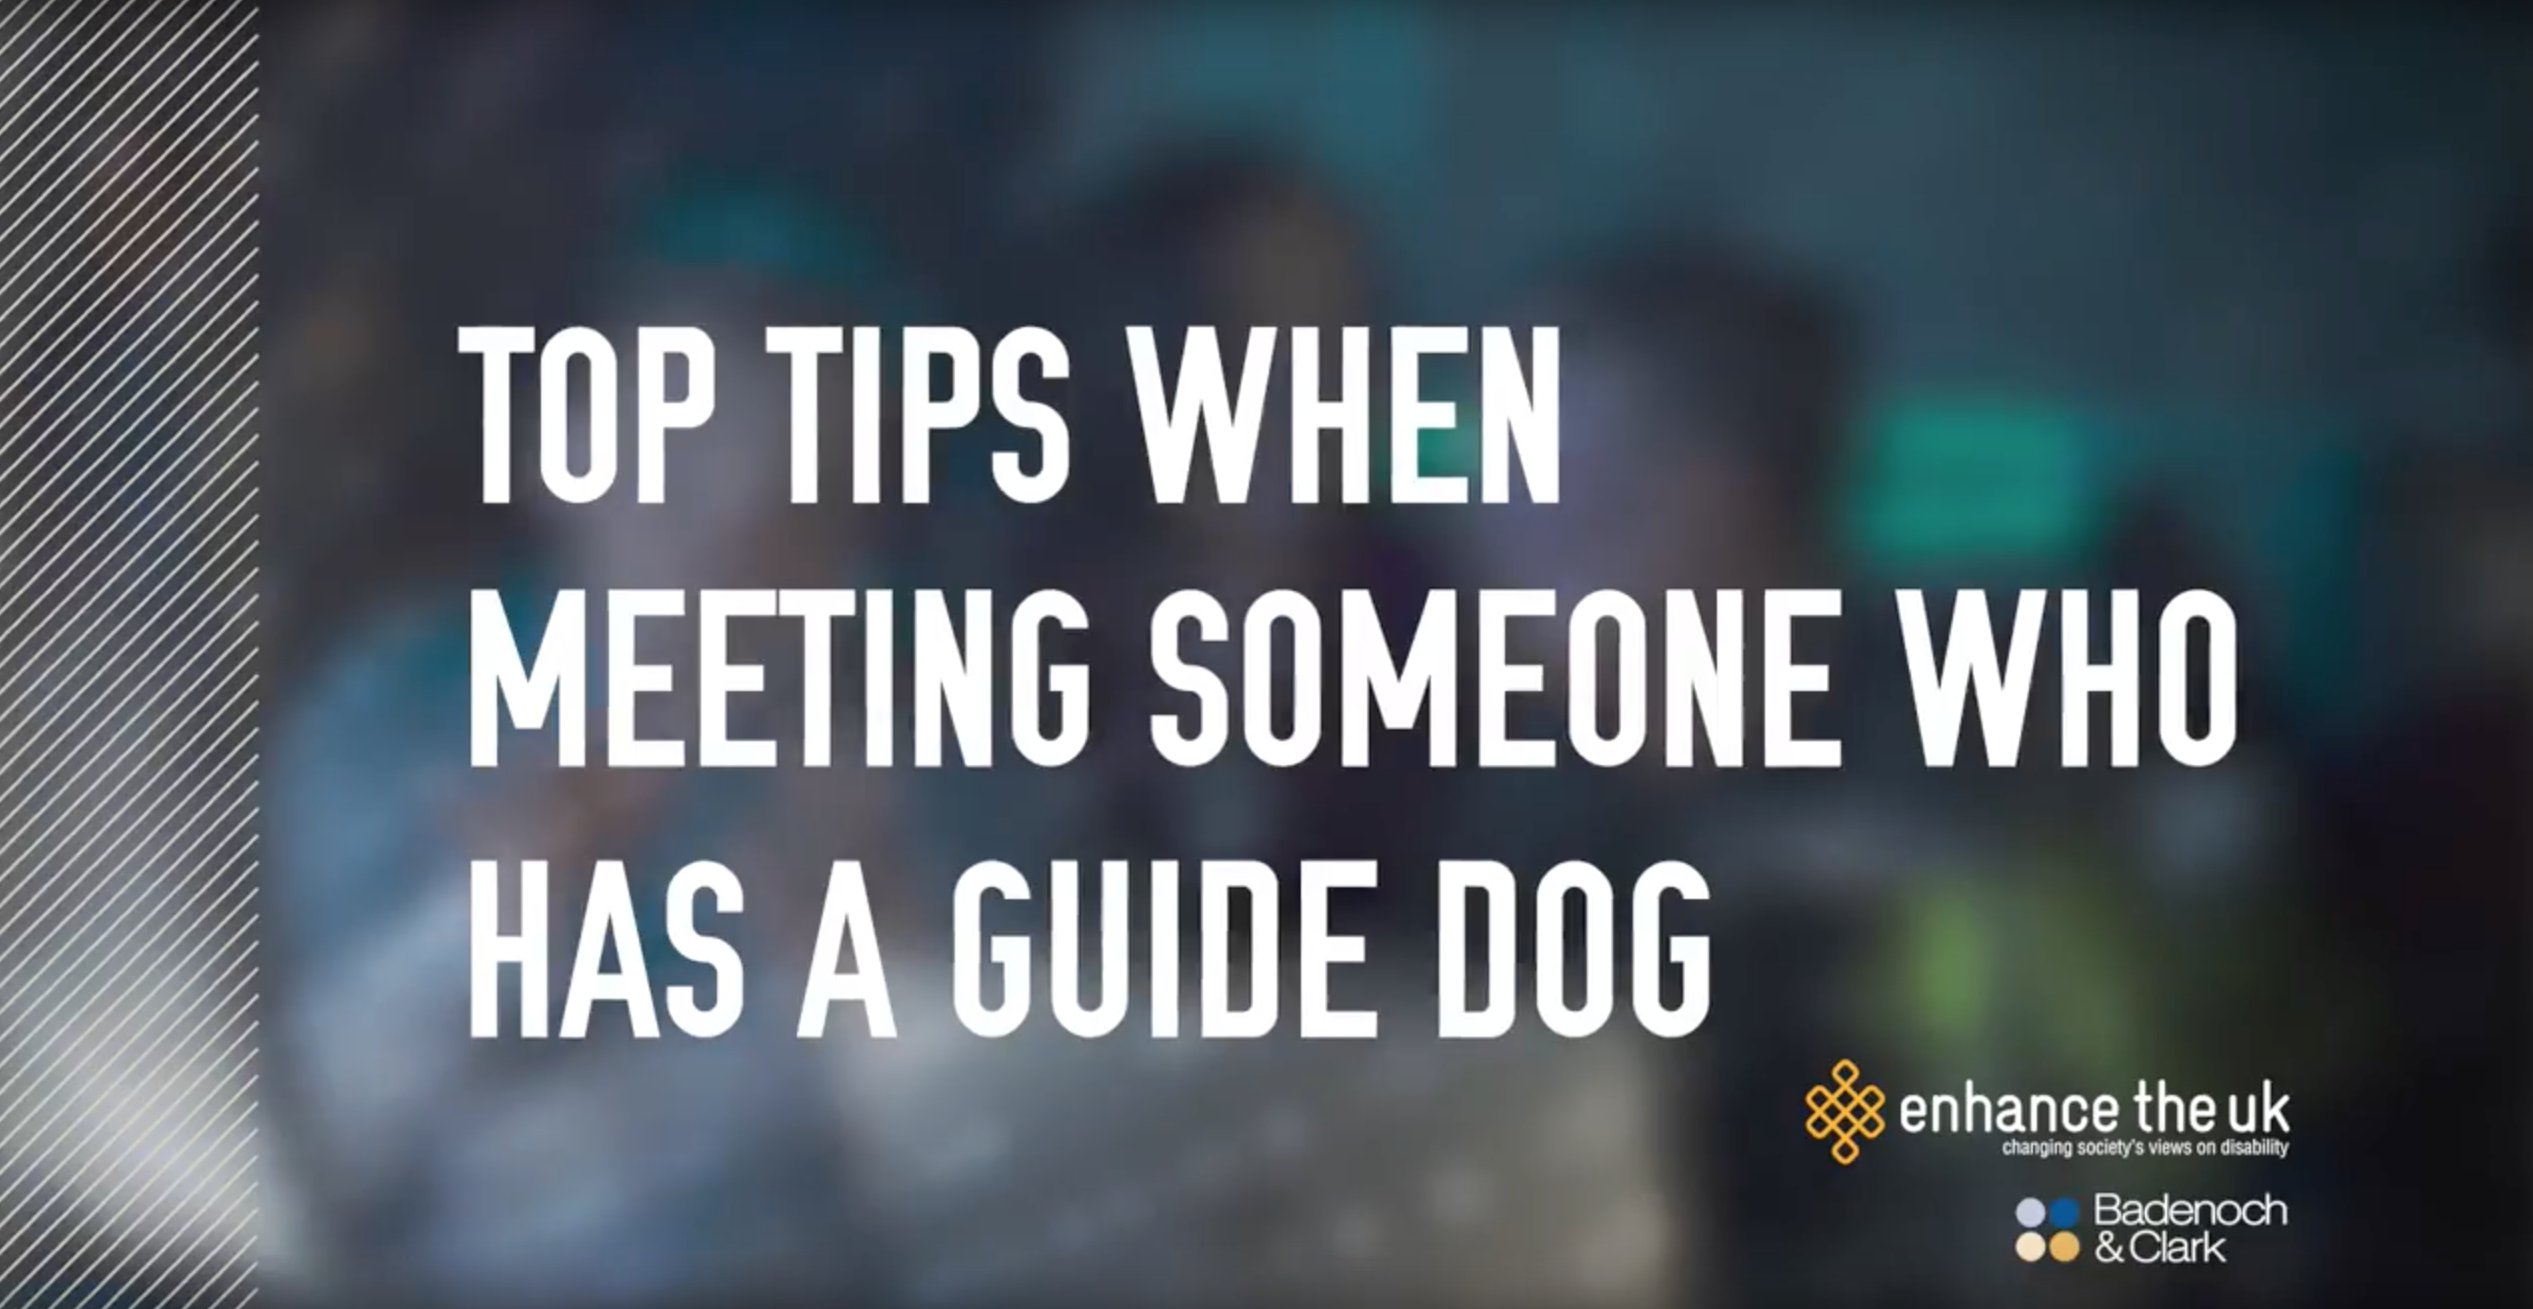 Text reading 'top tips when meeting someone who has a guide dog' from a bespoke training video made for badenoch and clark